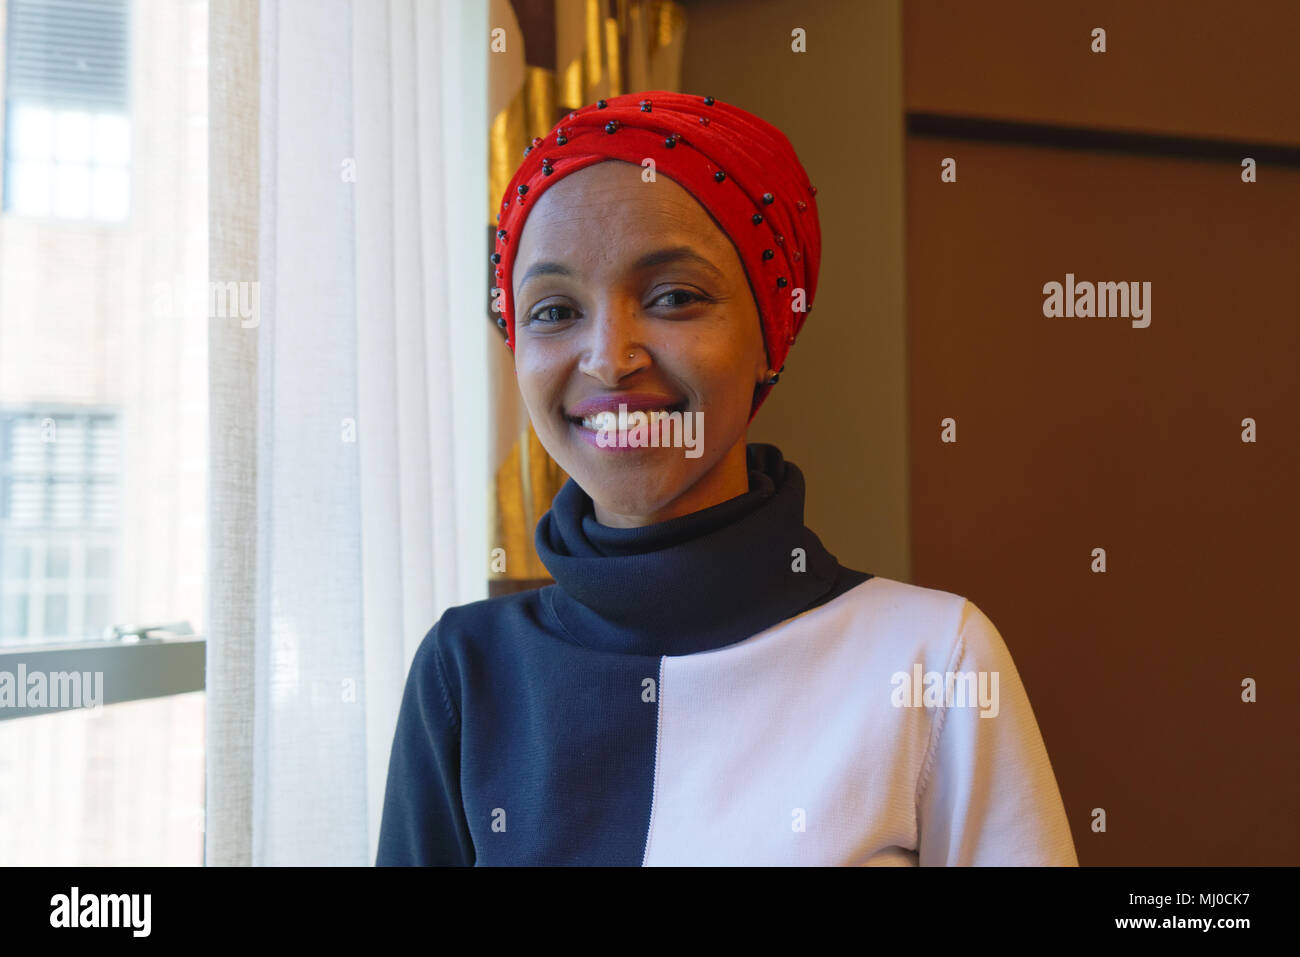 In 2016, Ilhan Omar won a seat in the Minnesota State Legislature, becoming the first Somali-American legislator in the United States. - Stock Image